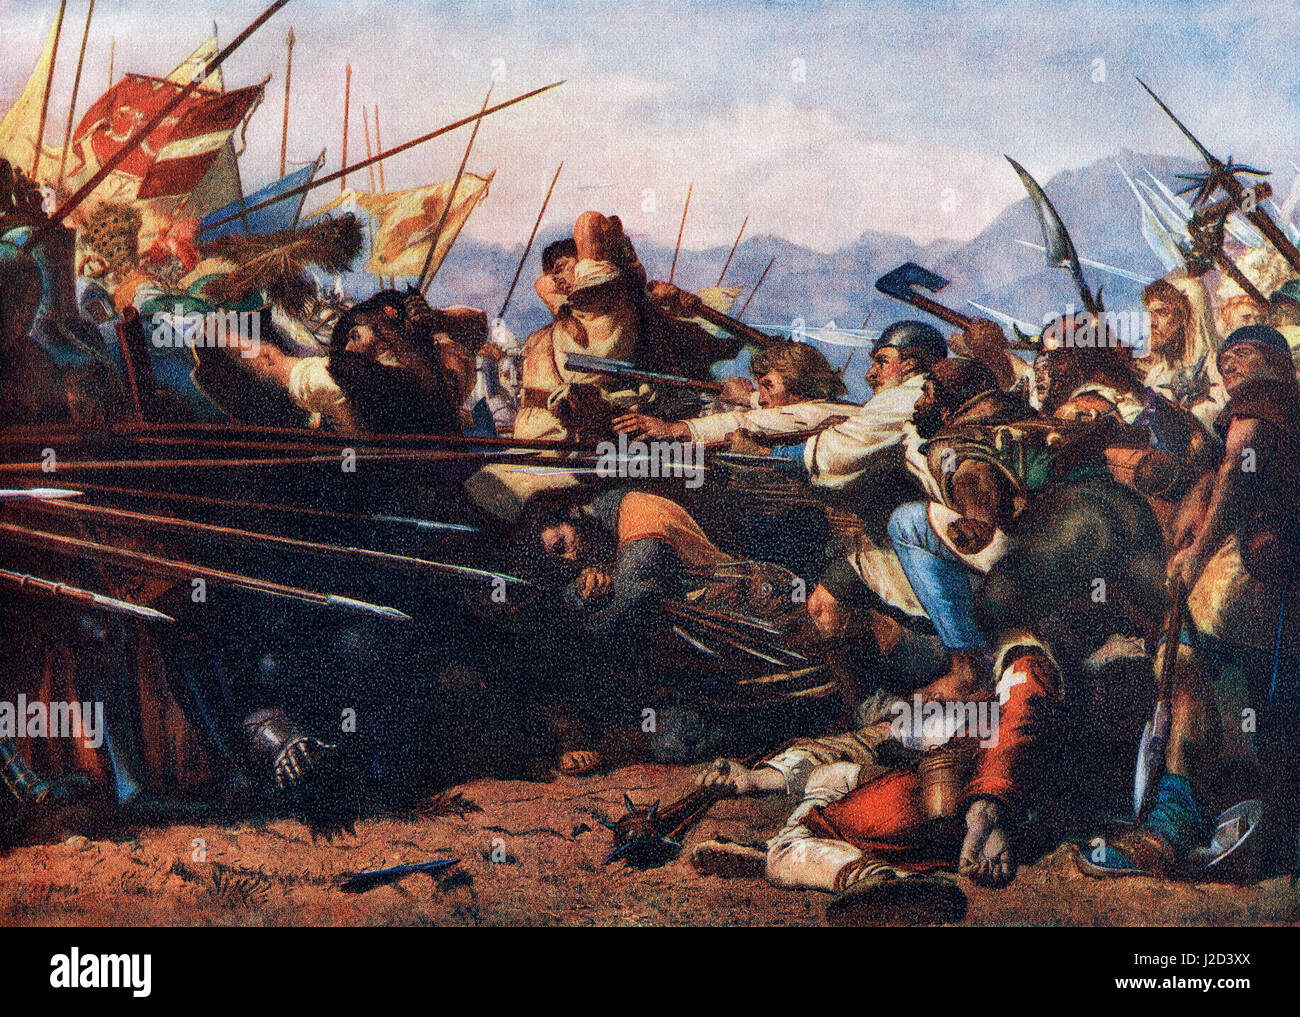 The Battle of Sempach, 9 July 1386, fought between Leopold III, Duke of Austria and the Old Swiss Confederacy. Stock Photo